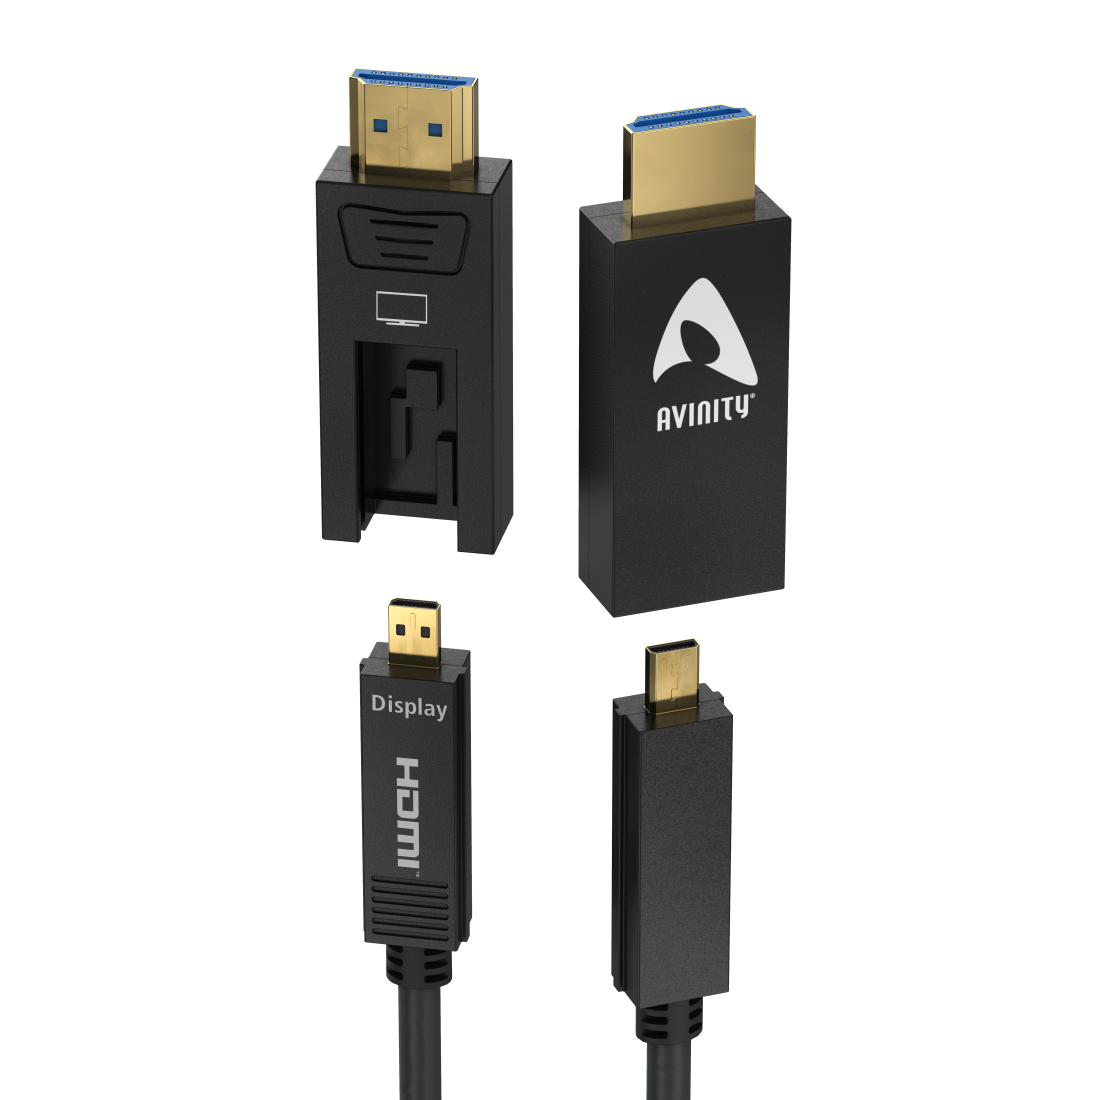 abx High-Res Image - Avinity, Optical, Active HDMI™ Cable with D-A Adapter, Ultra-Thin, gold-plated,12.5m